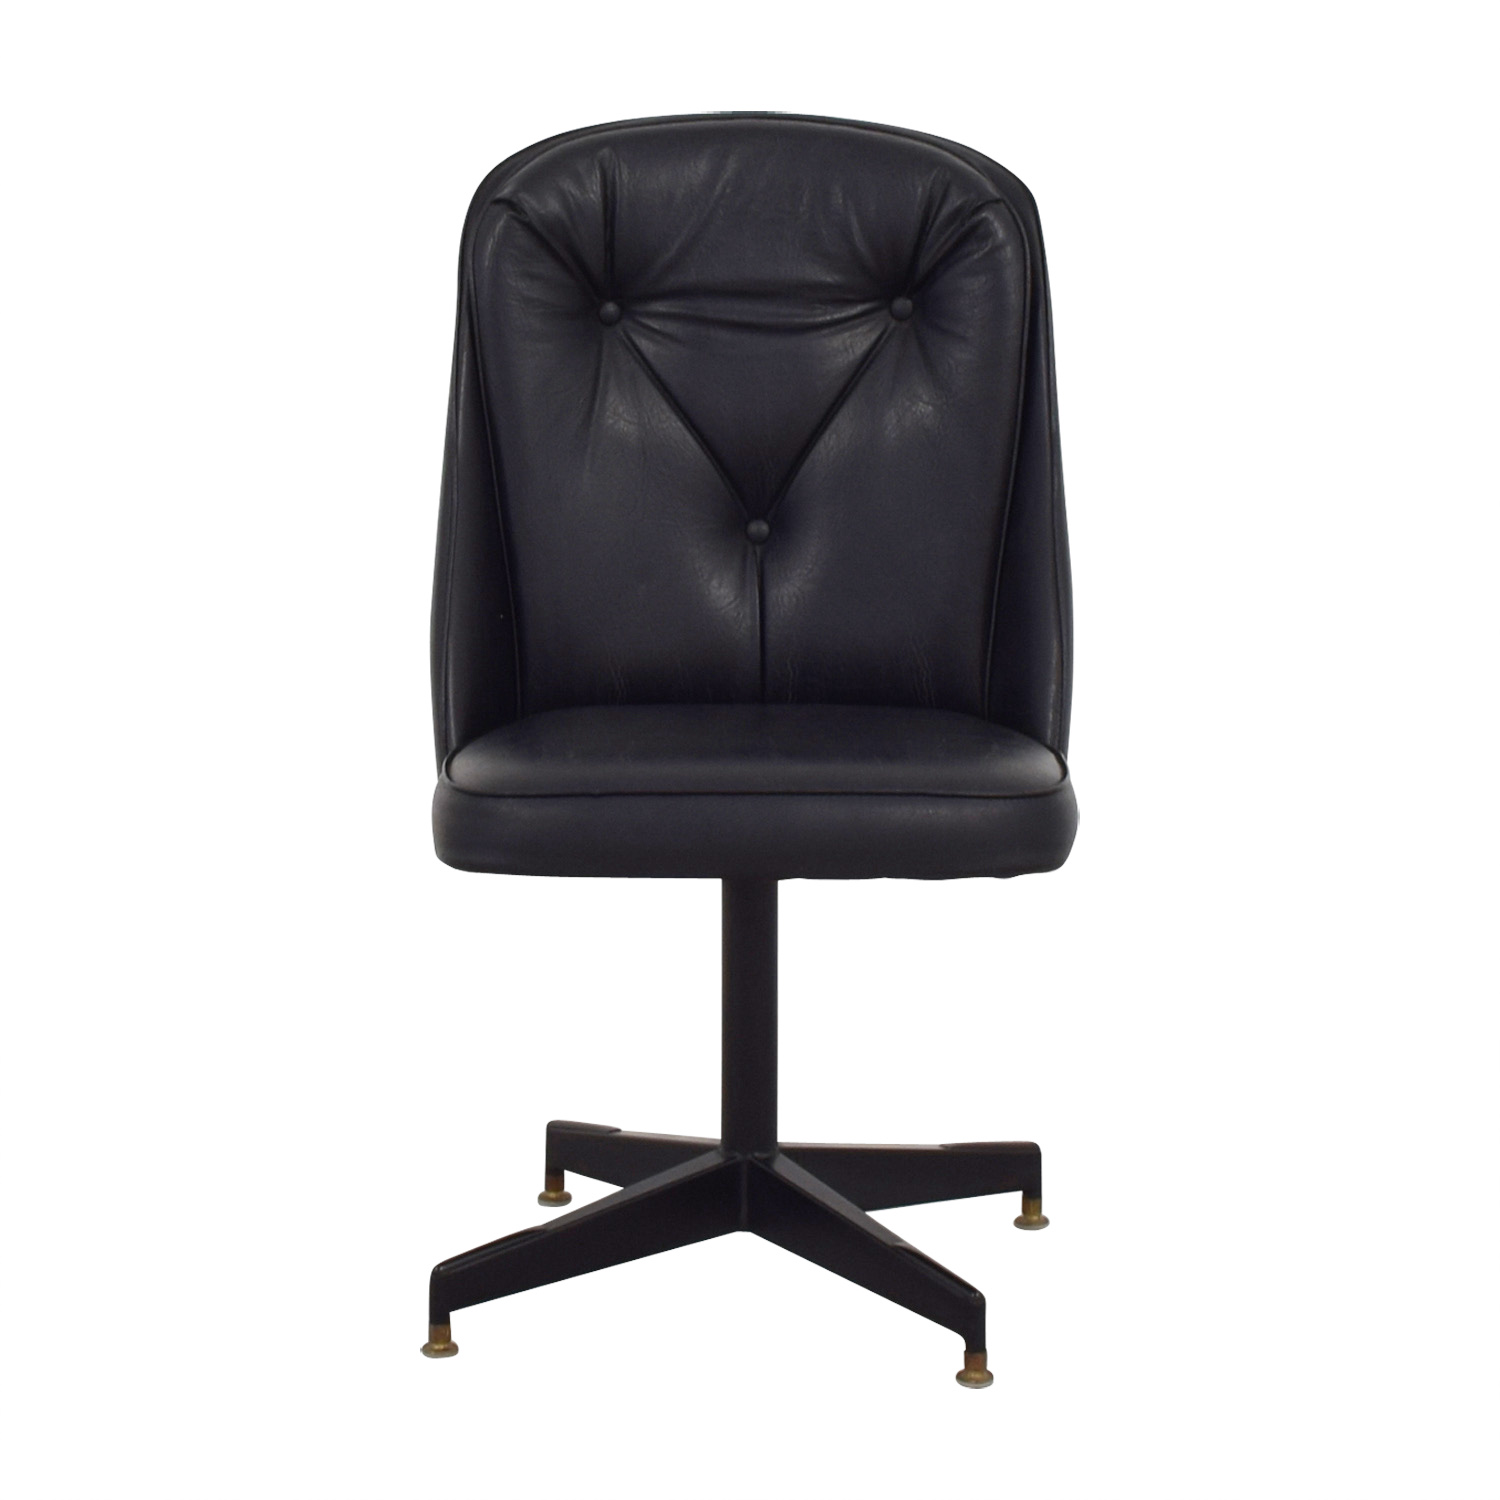 Black Leather Swivel Office Desk Chair used